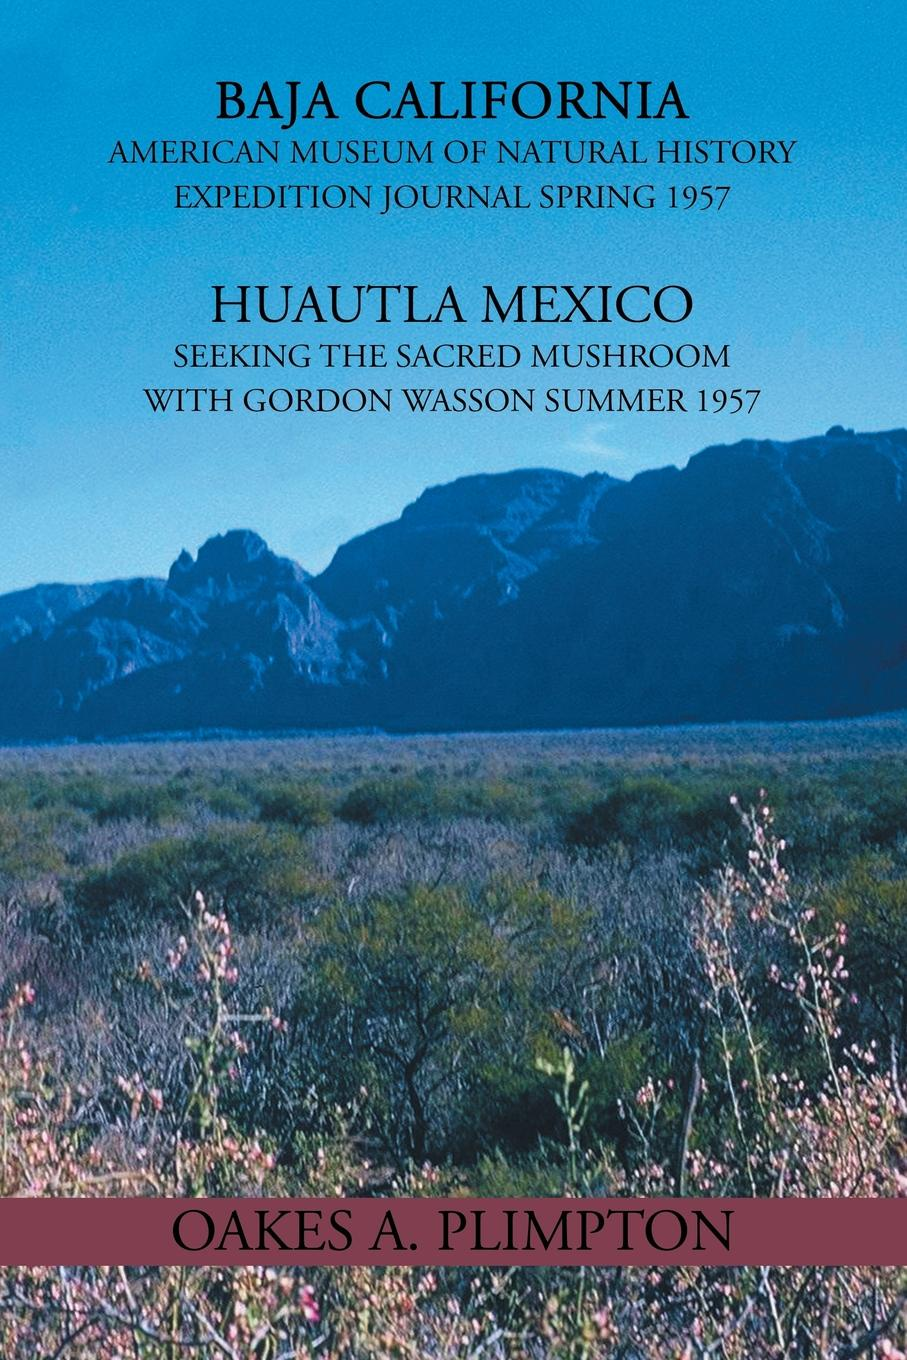 Oakes a. Plimpton 1957 Expeditions Journal. Baja California American Museum of Natural History Expedition Journal Spring Huautla Mexico Seeking the Sacred Mu